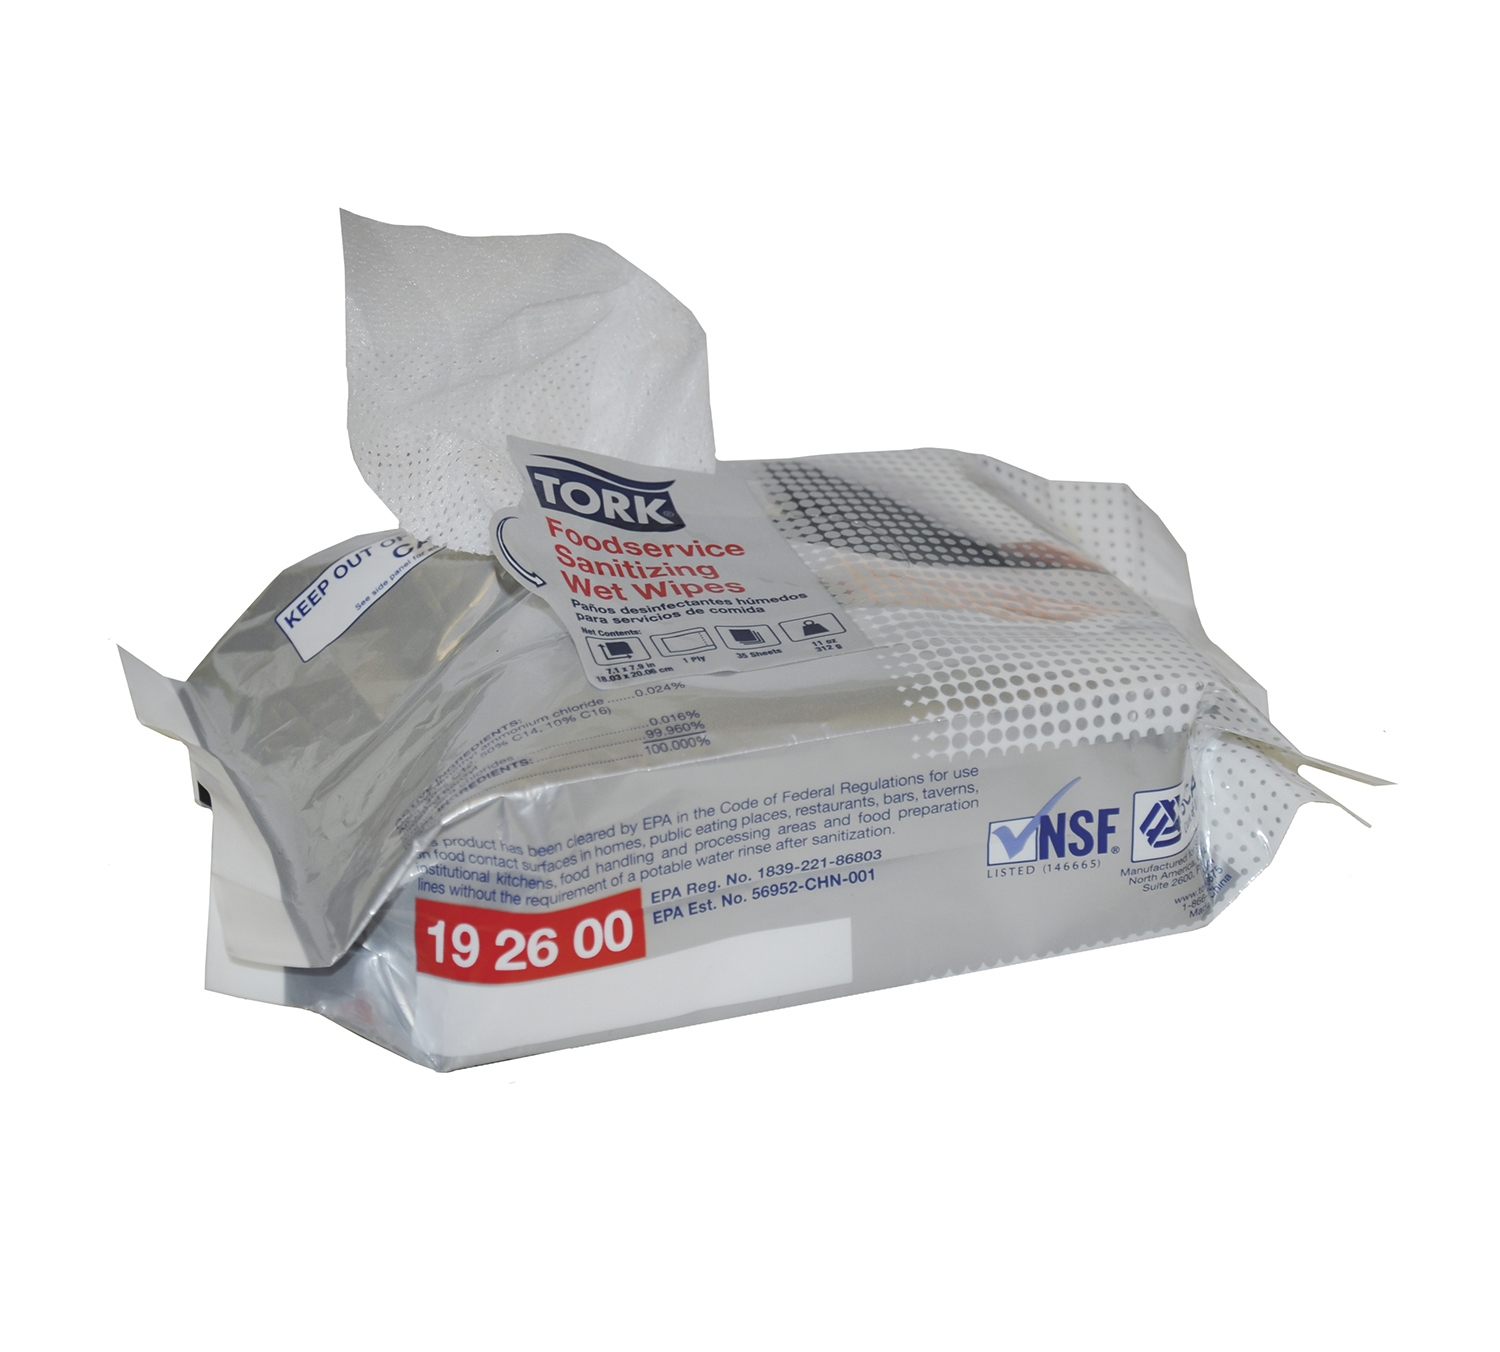 192600 TORK FS SANIT WIPES 700